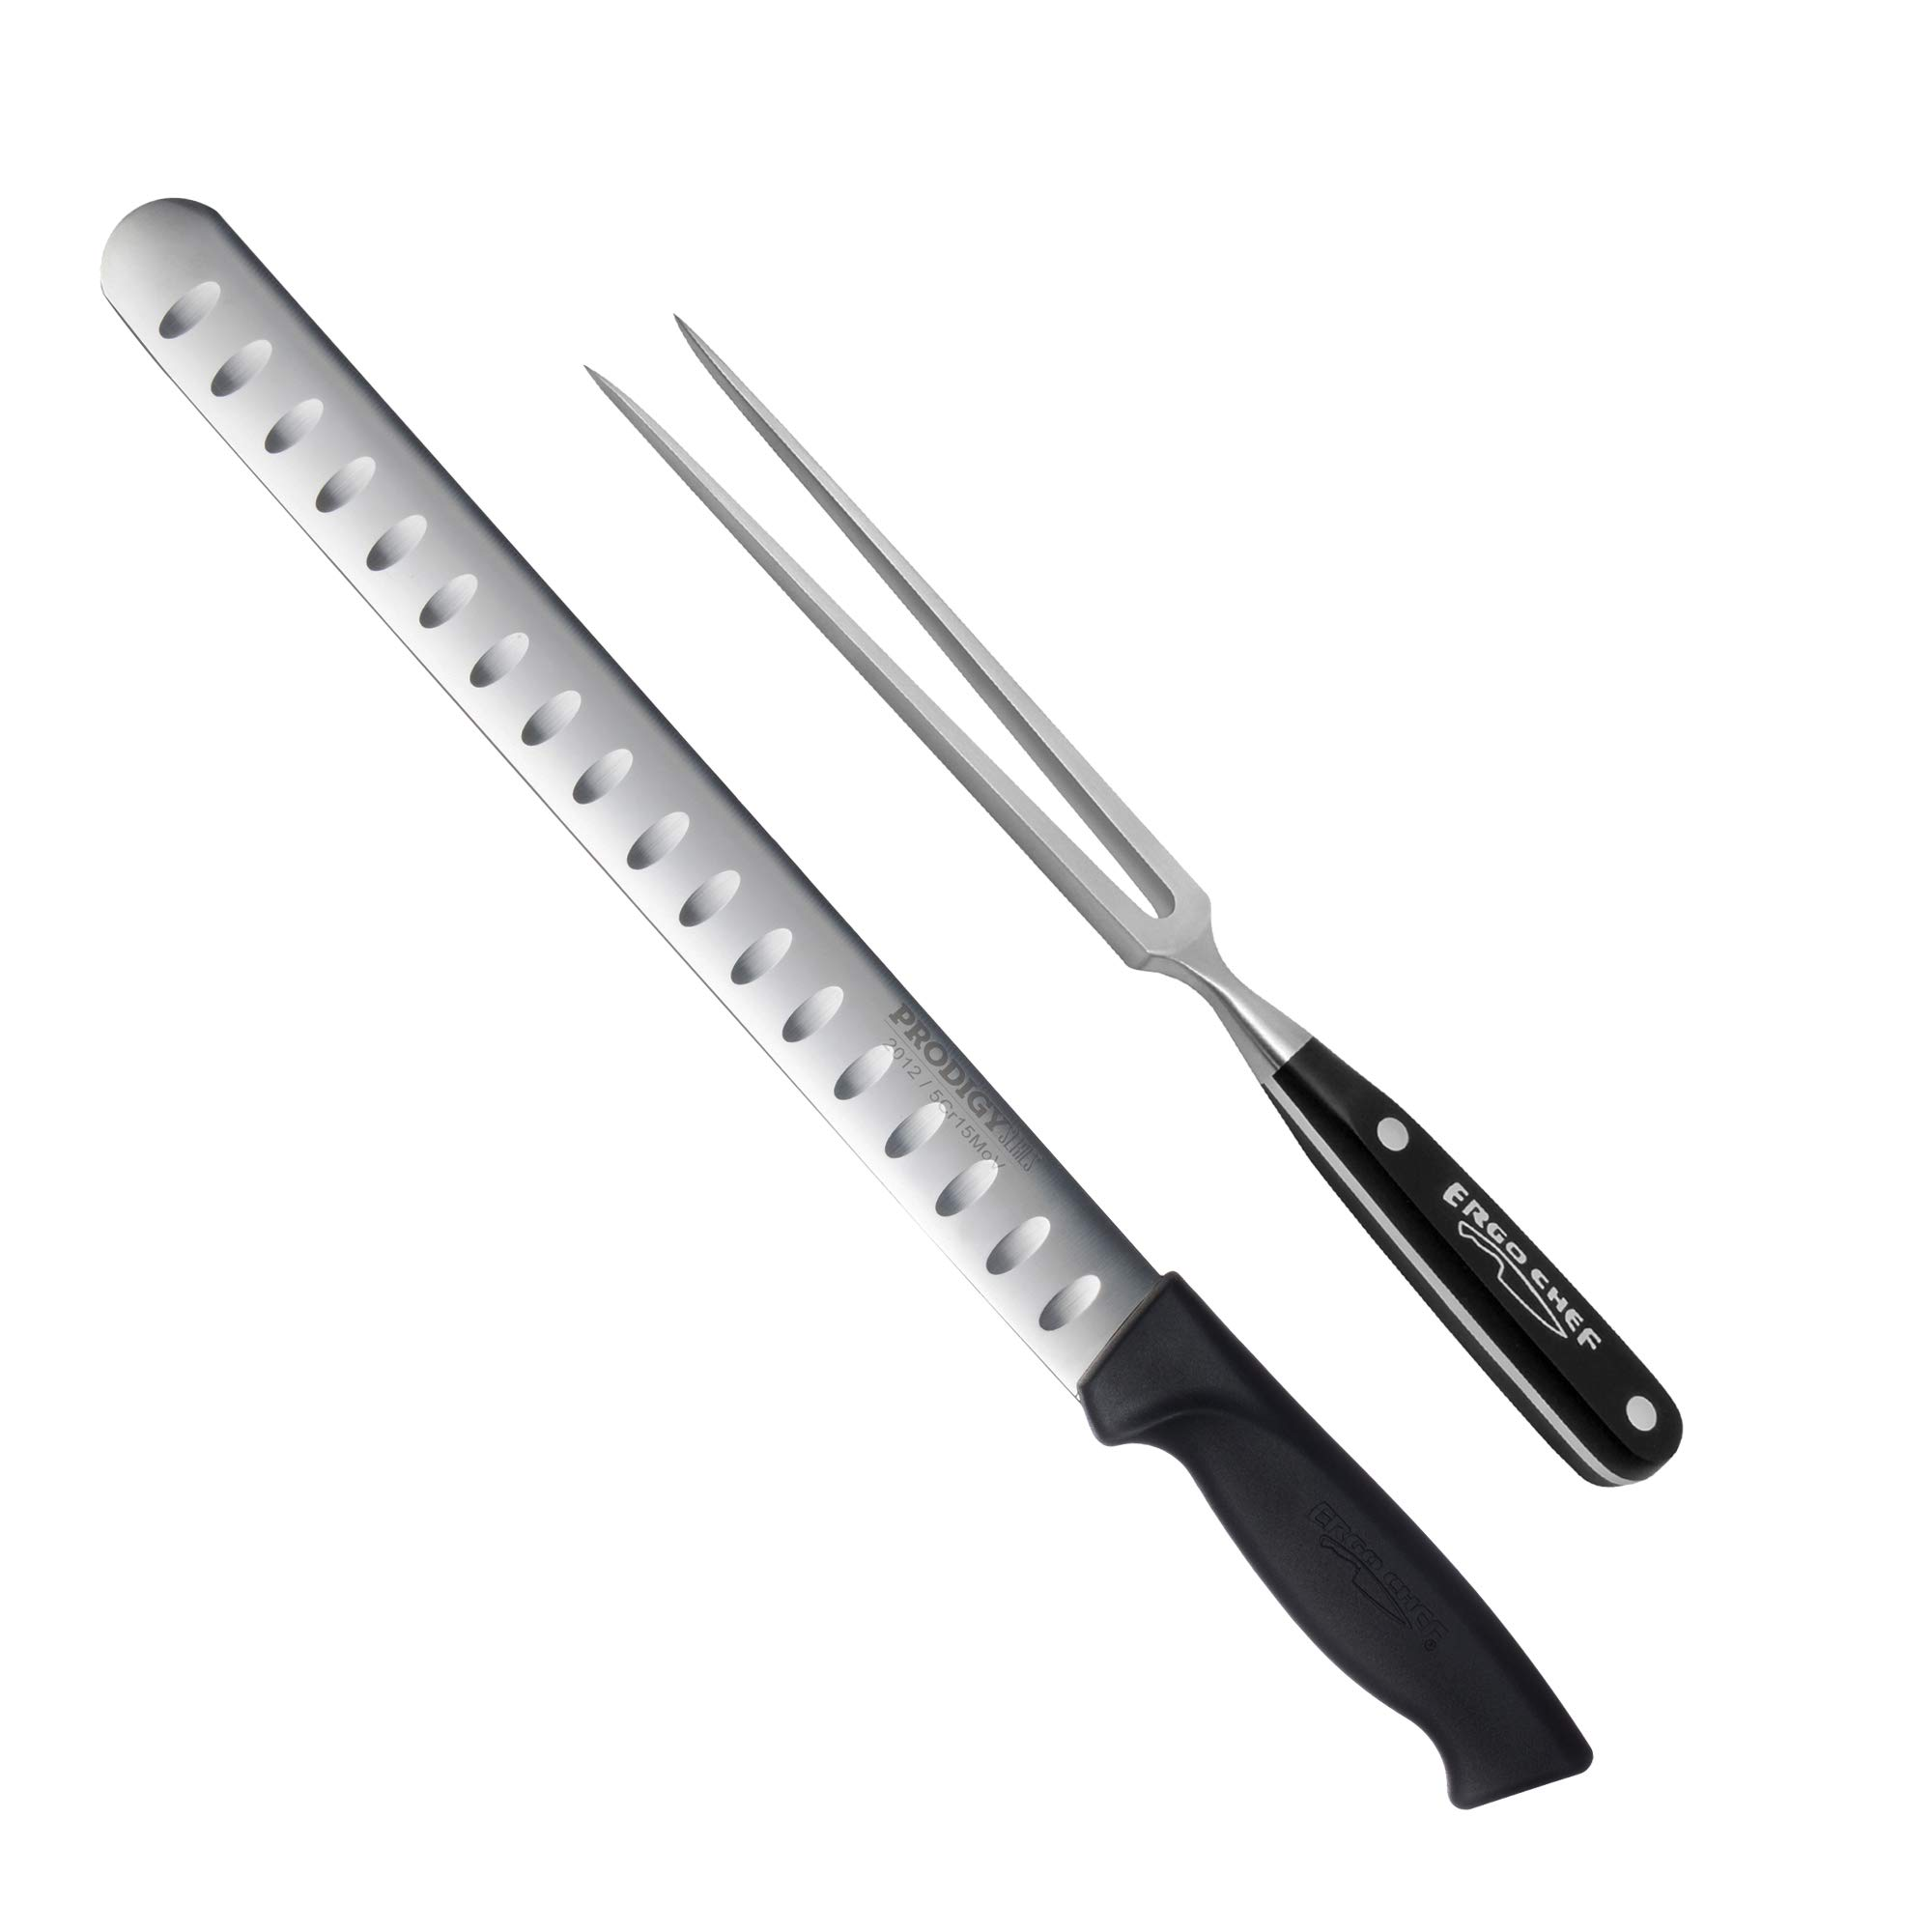 2 piece Prodigy 12 inch Slicer and Pro Series Carving Fork Set